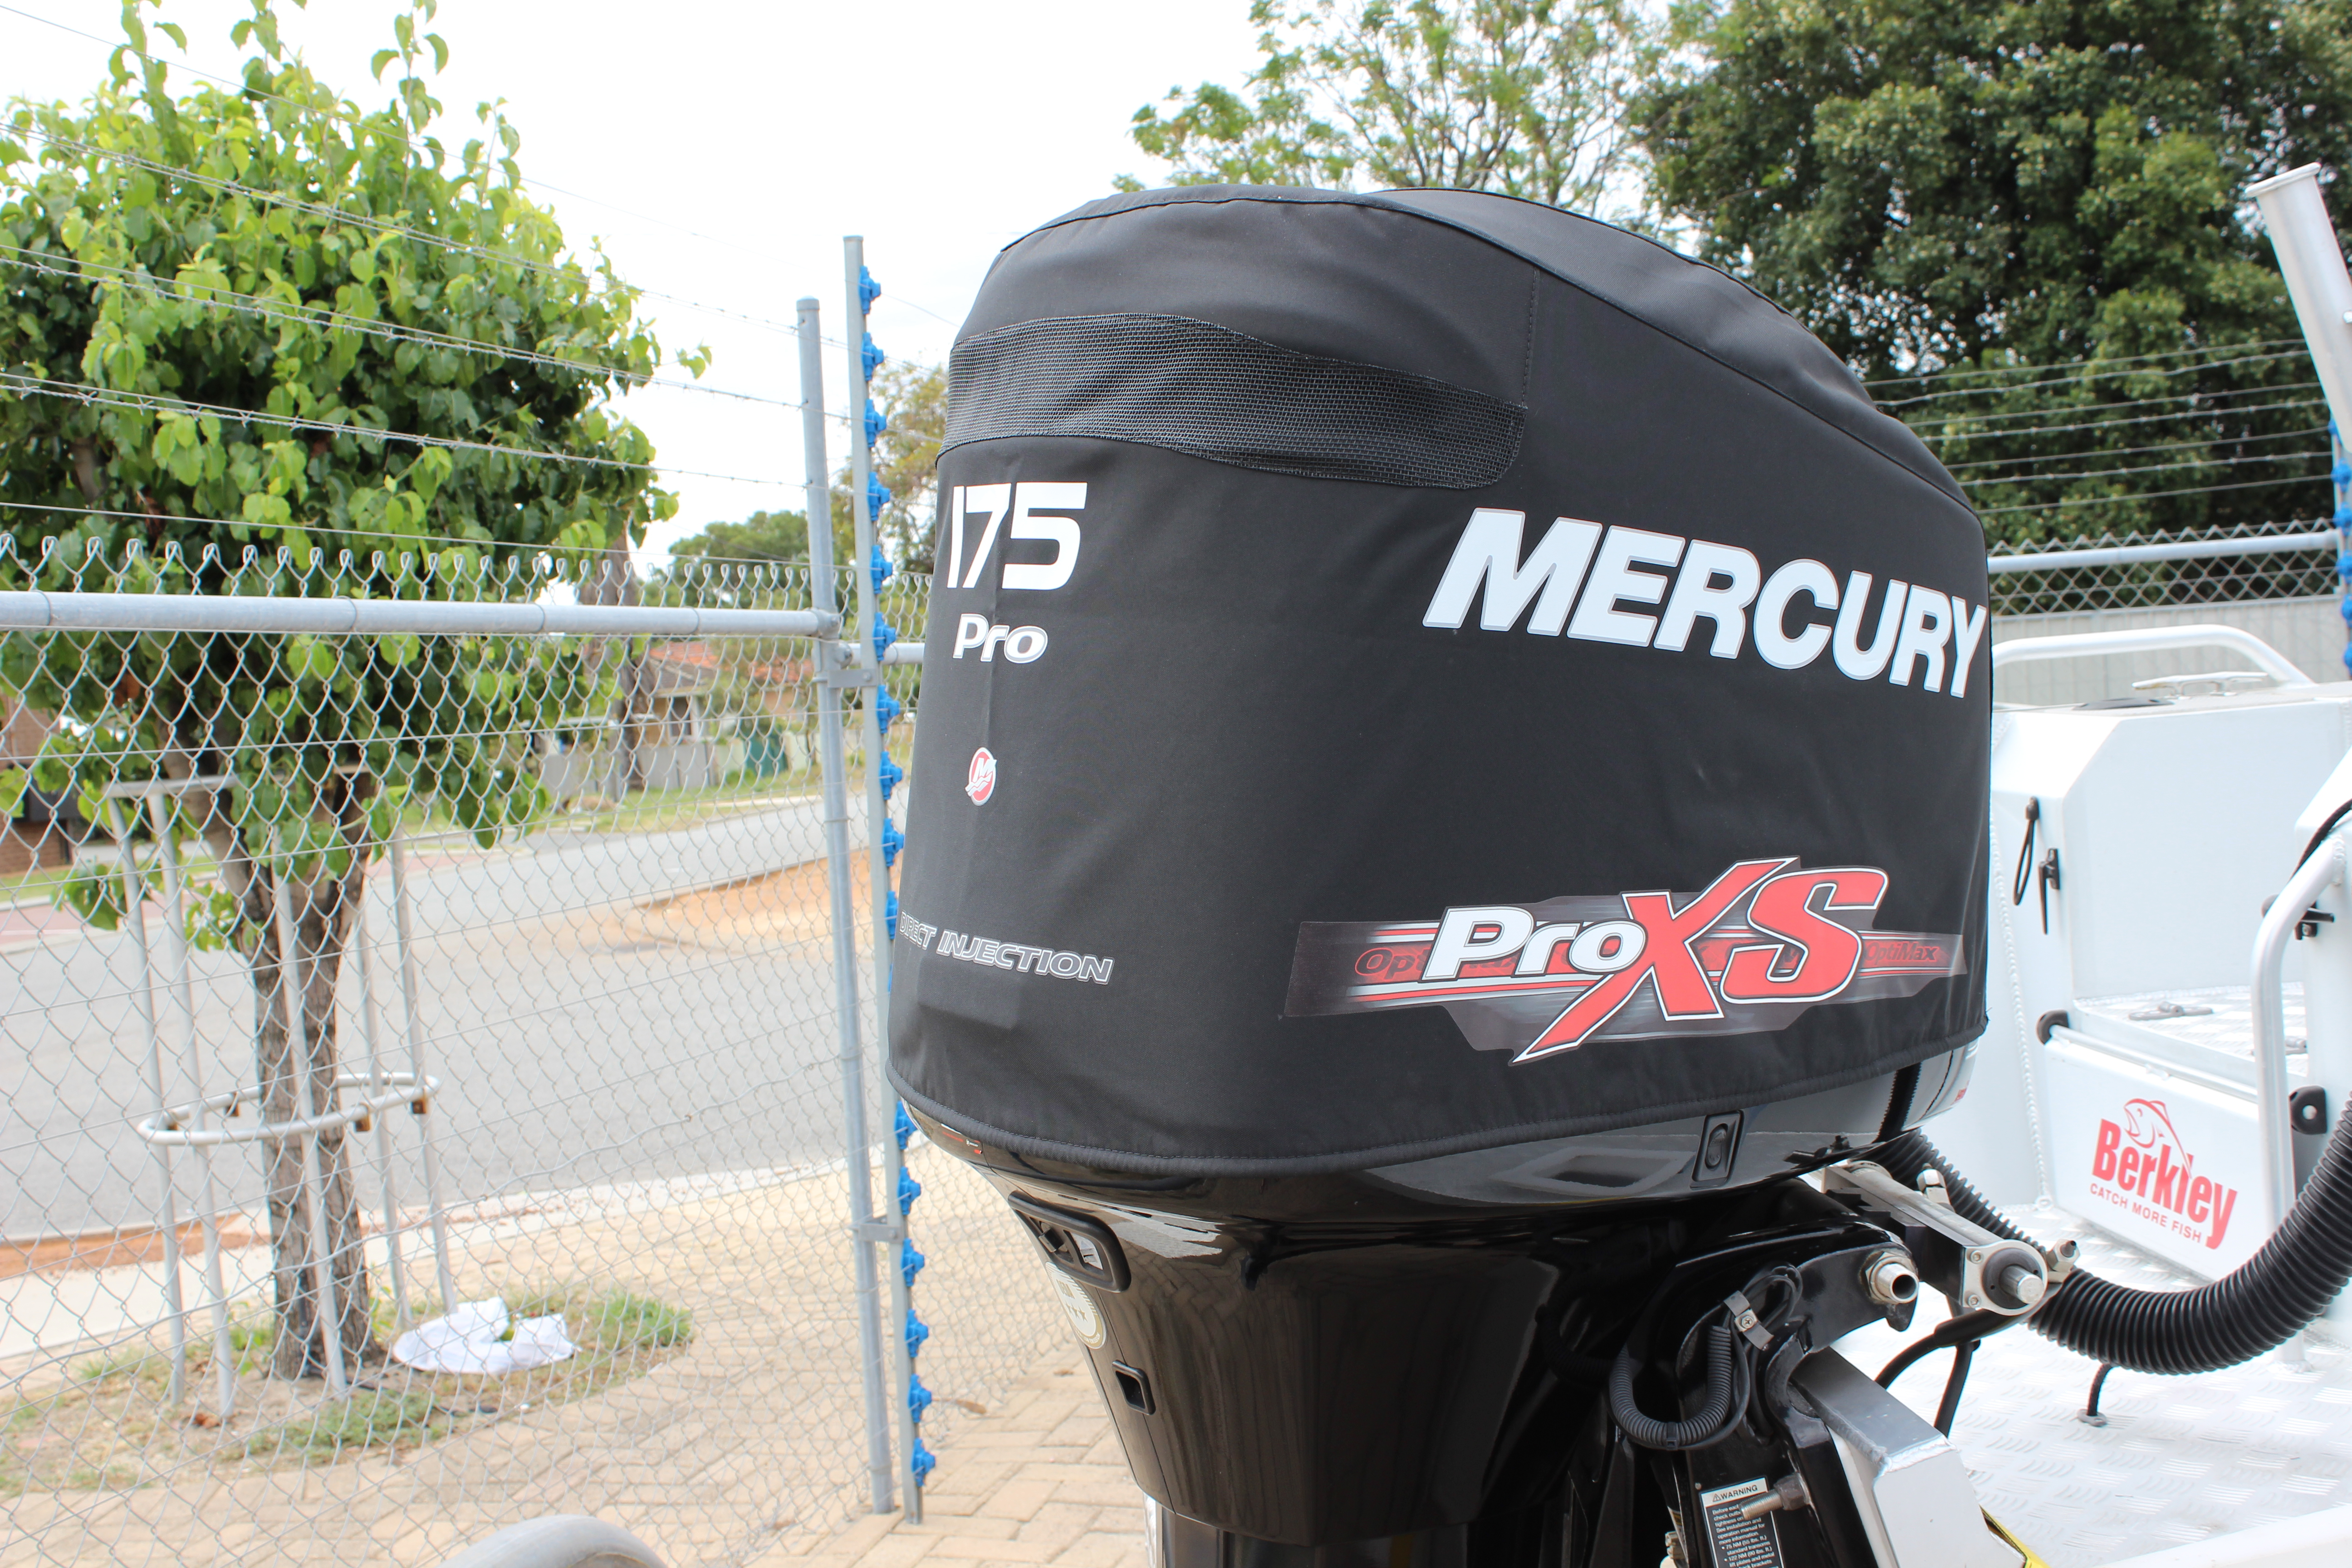 Mercury Outboard Covers Vented Cowling Protection